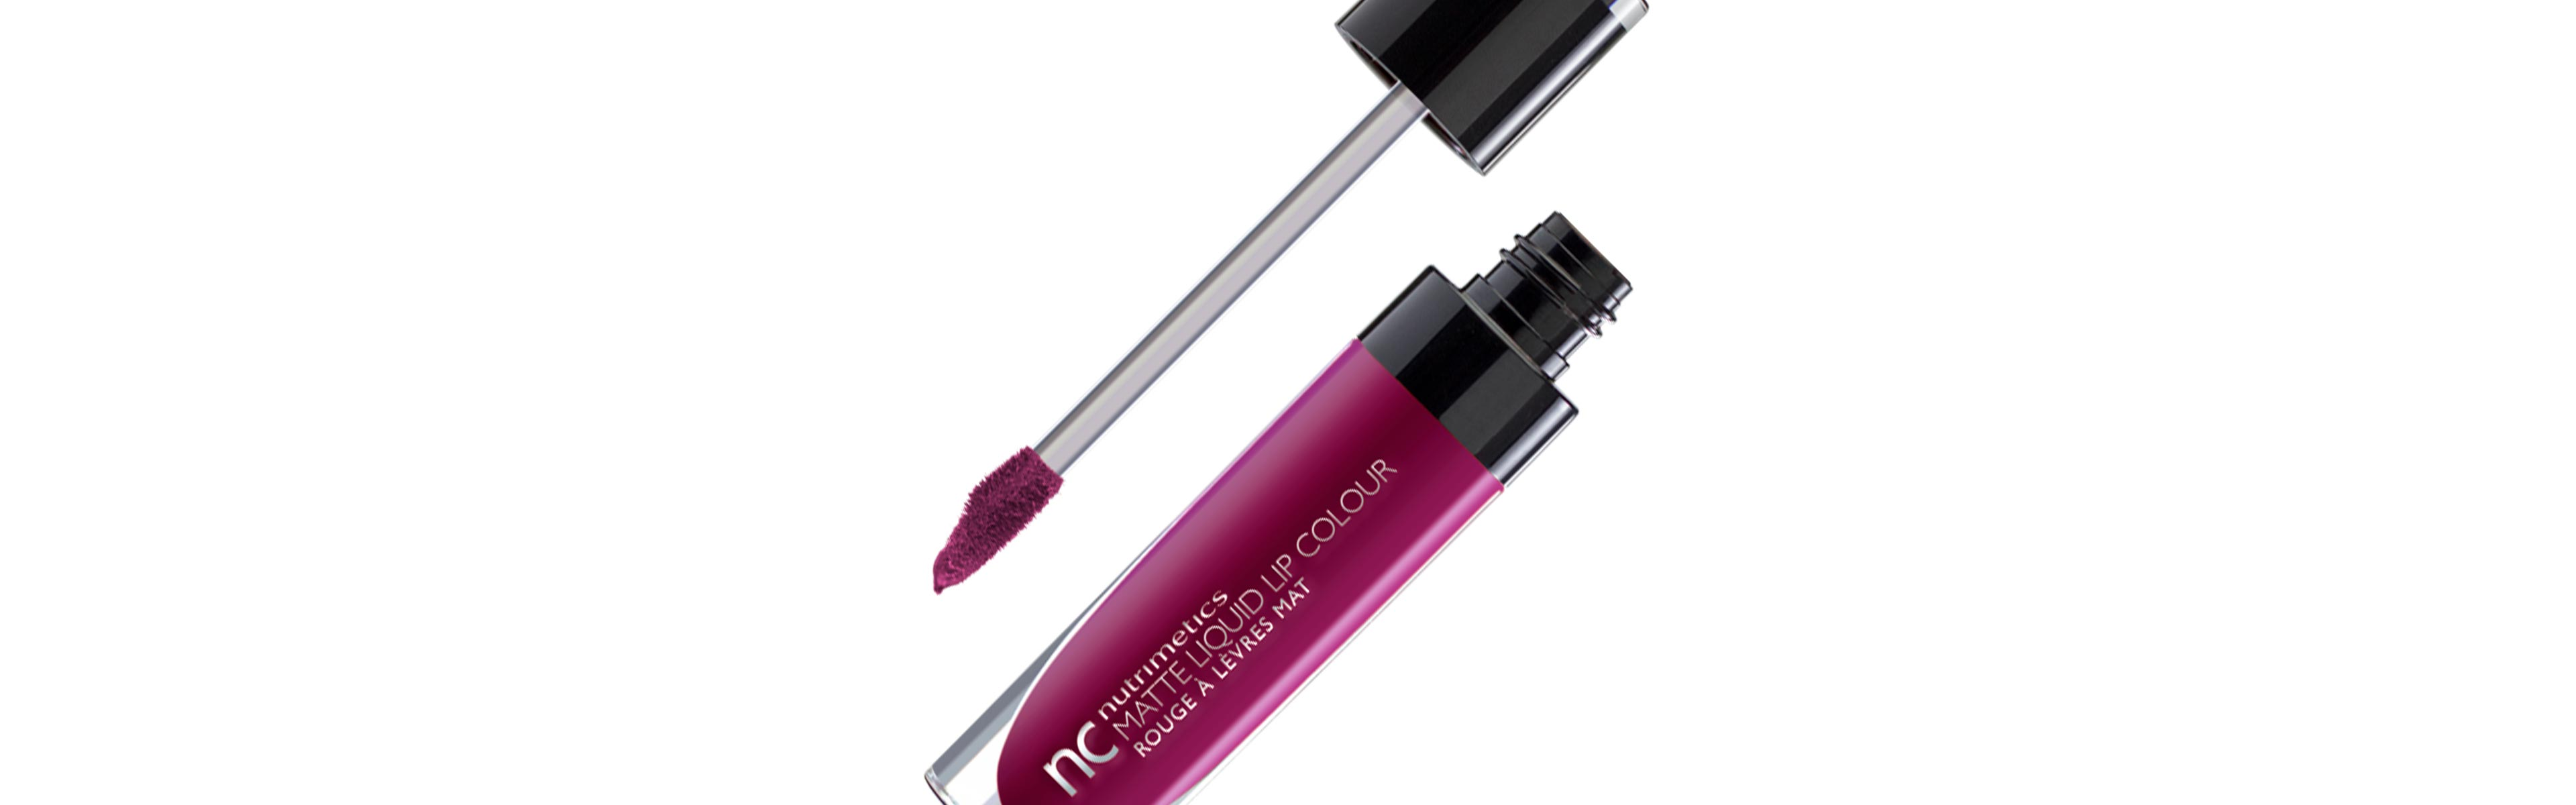 GORGEOUS GRAPE - Nutrimetics